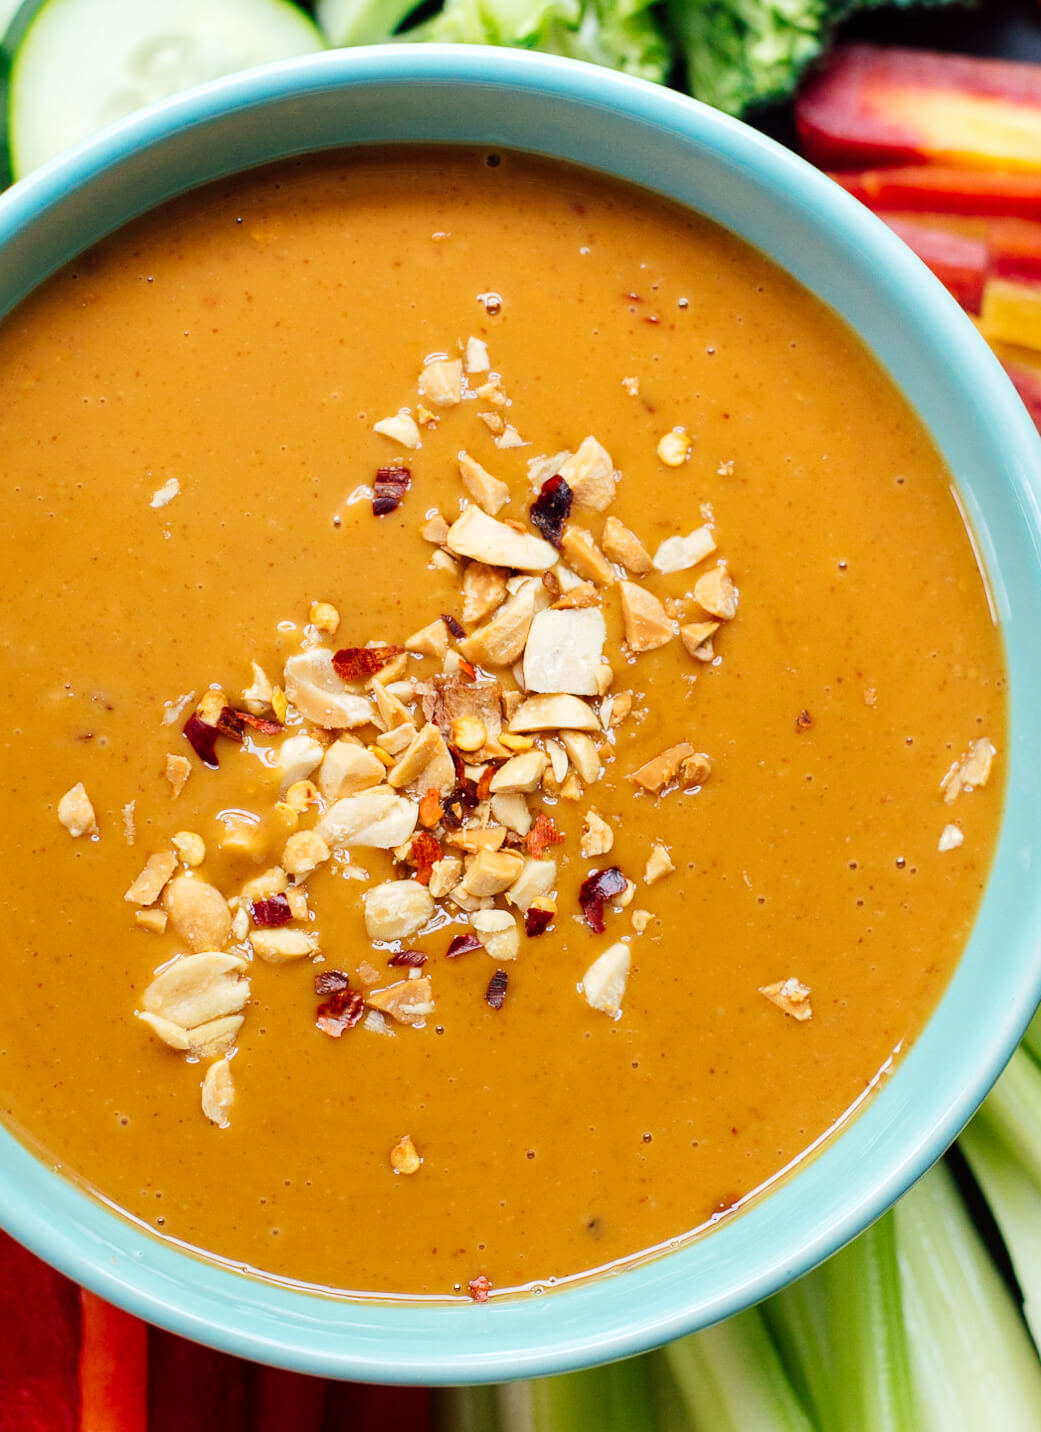 Healthy peanut sauce for dipping and drizzling!